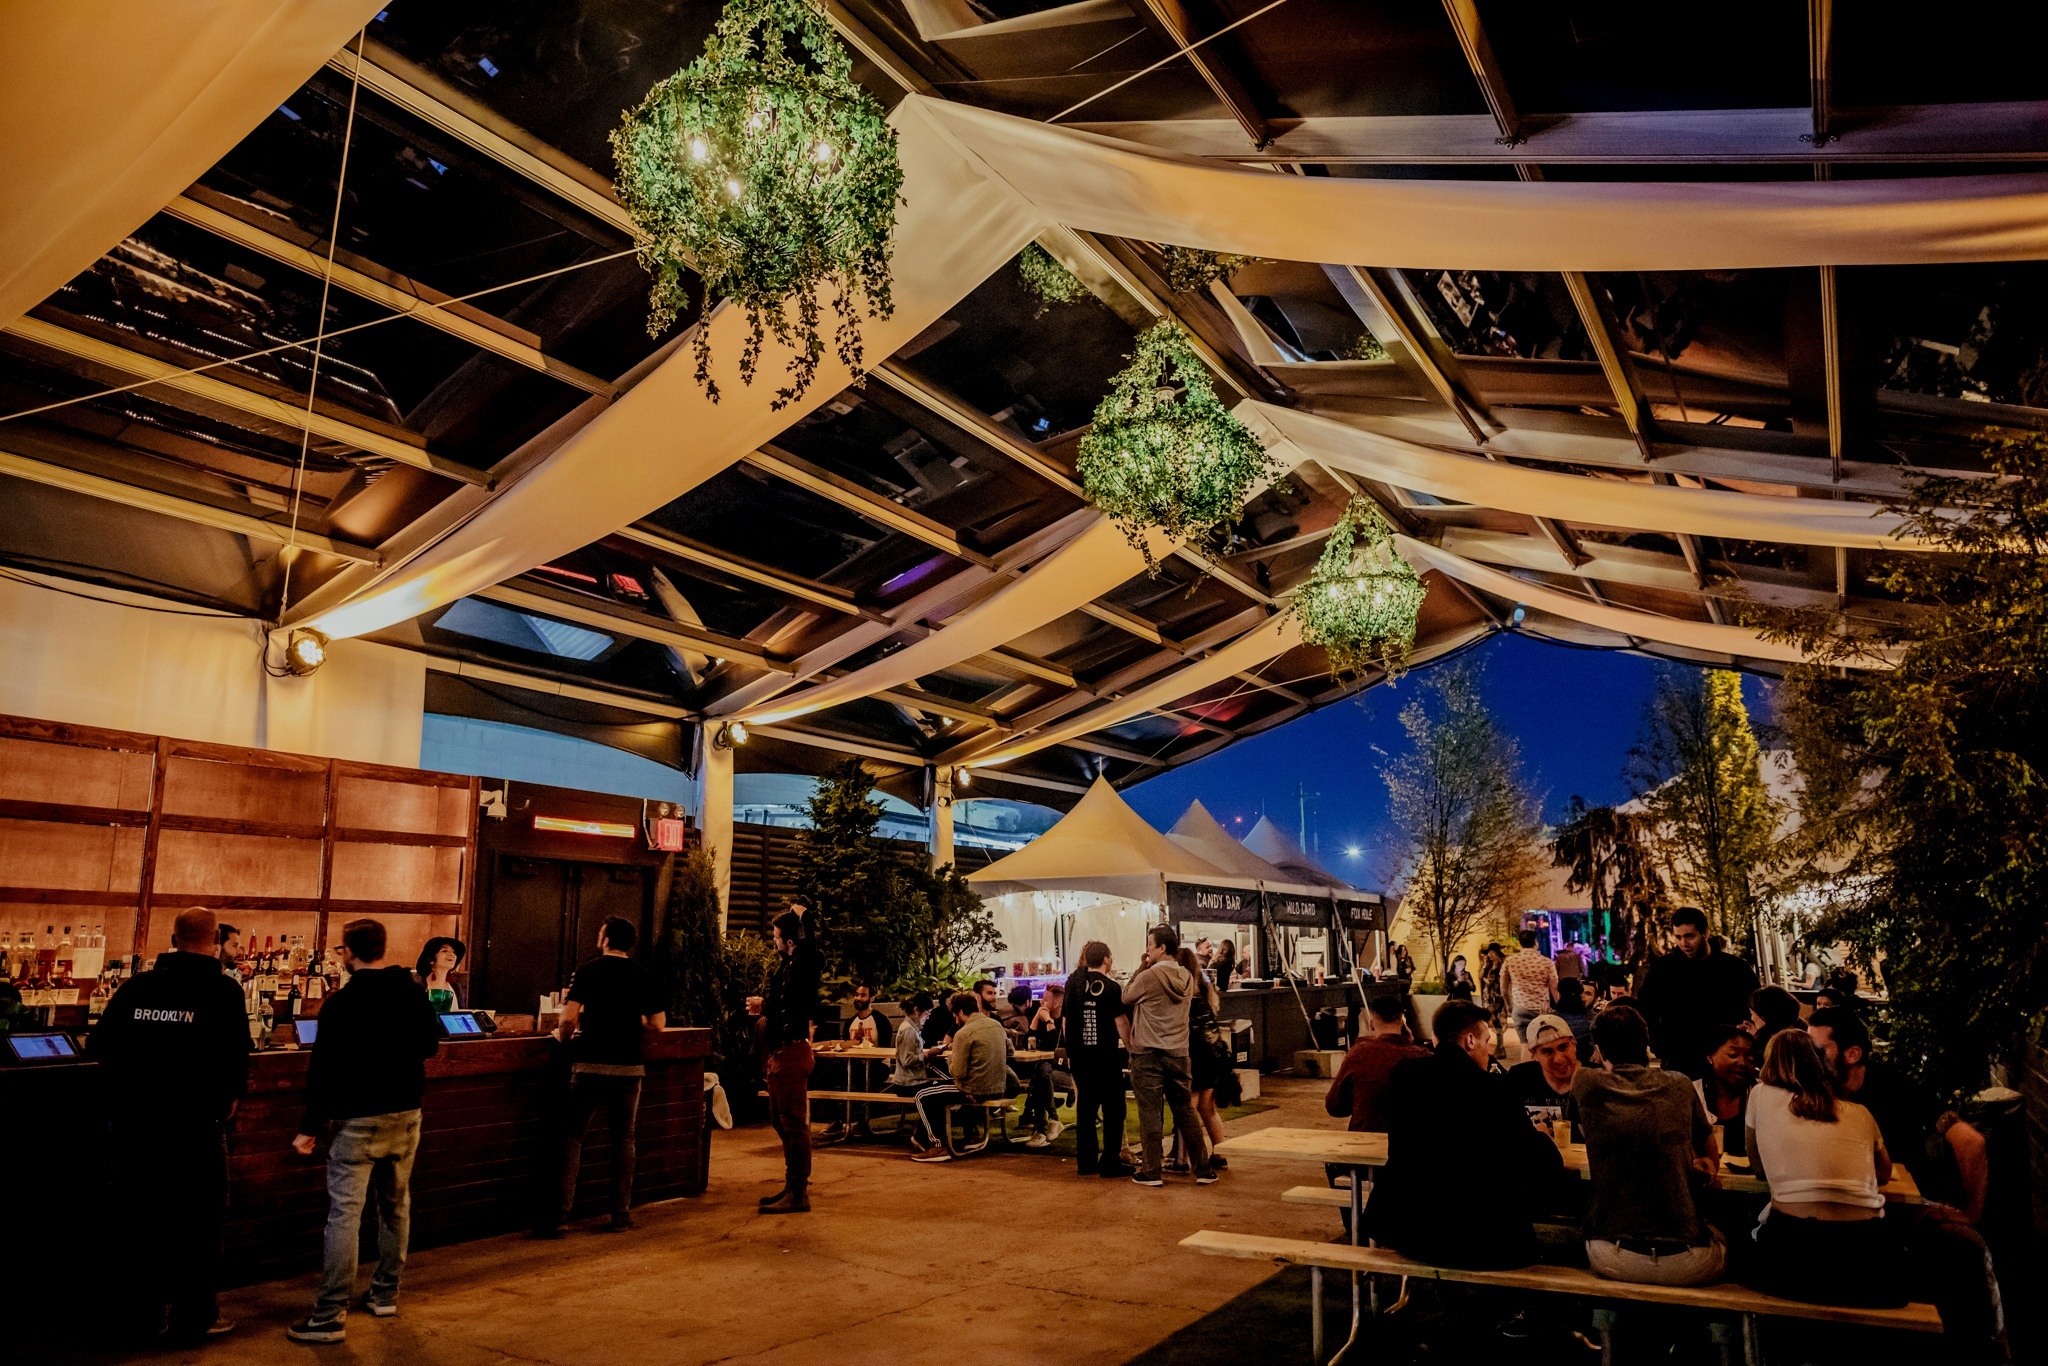 GARDEN LOUNGE & FOOD COURT - The latest addition to the Brooklyn Mirage is a sheltered Food Court with a full-range of octo-lacto-vegan-friendly options from Pizza, Tacos, Tapas as well as a Candy Bar, with boozy Milkshakes, ice cream and more. Come early for sunset dining and drinking!!